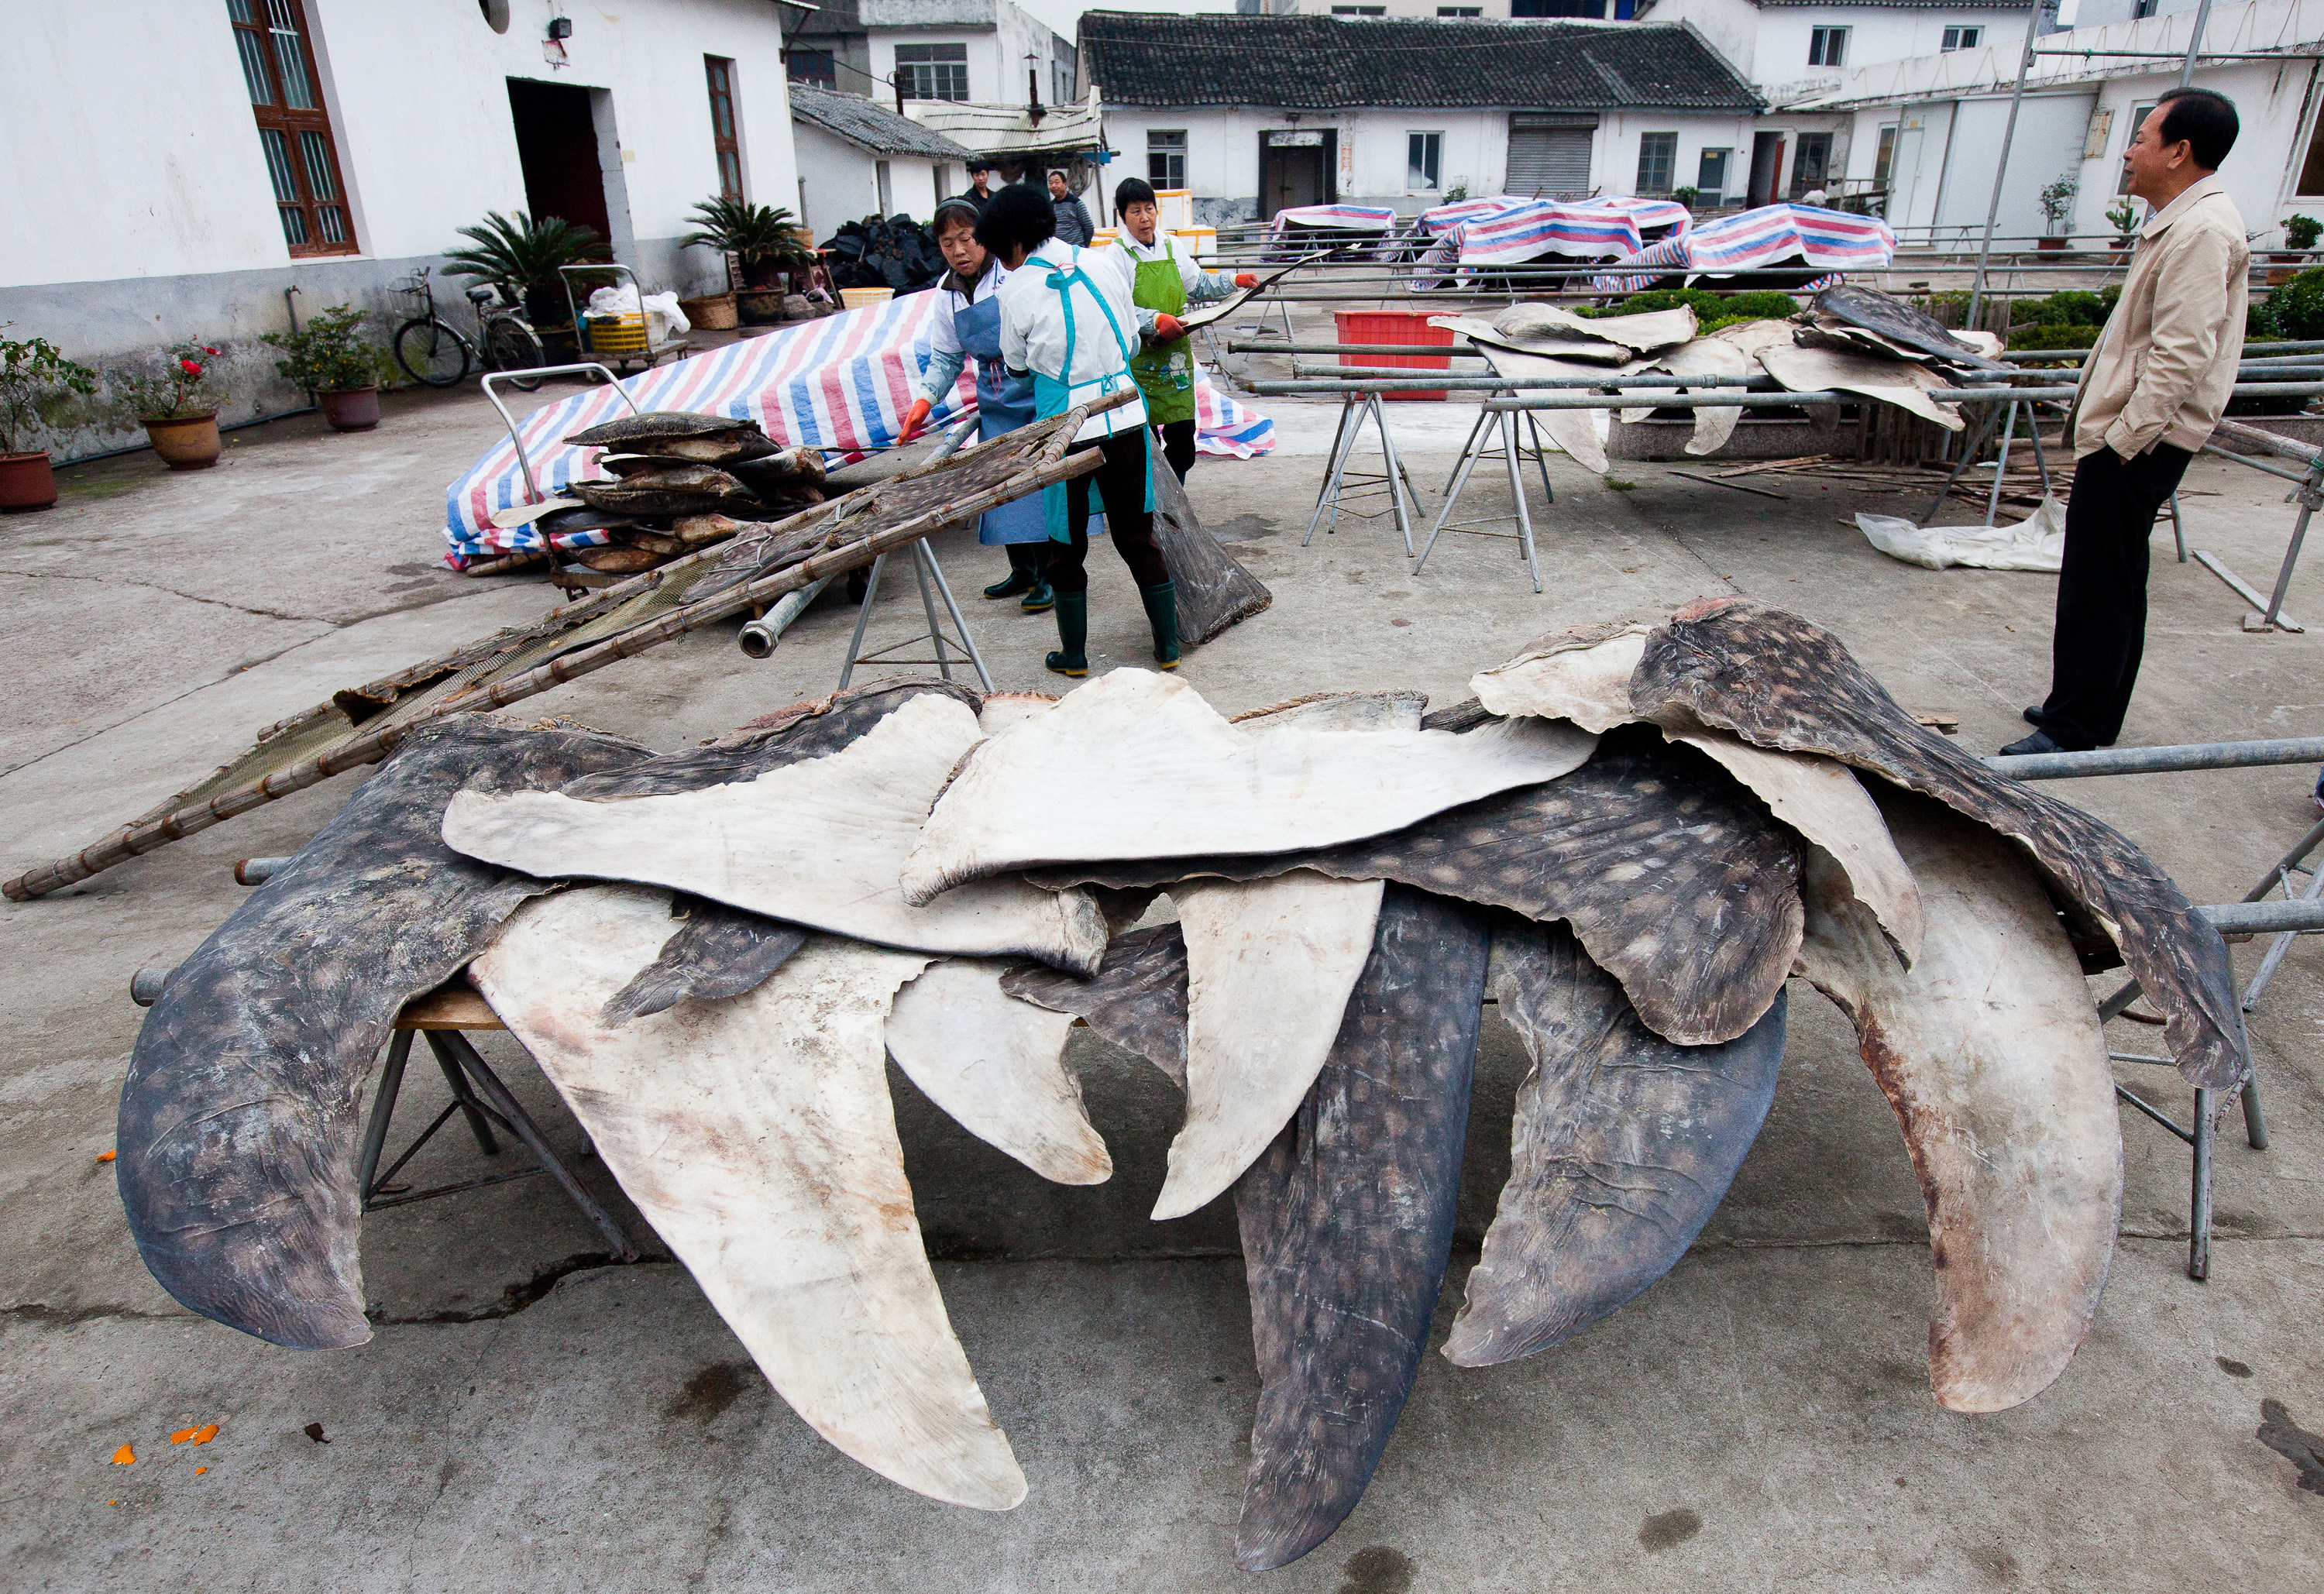 Whale-shark fins are dried and stacked for export at a processing plant in Puqi, Zhejiang province, China